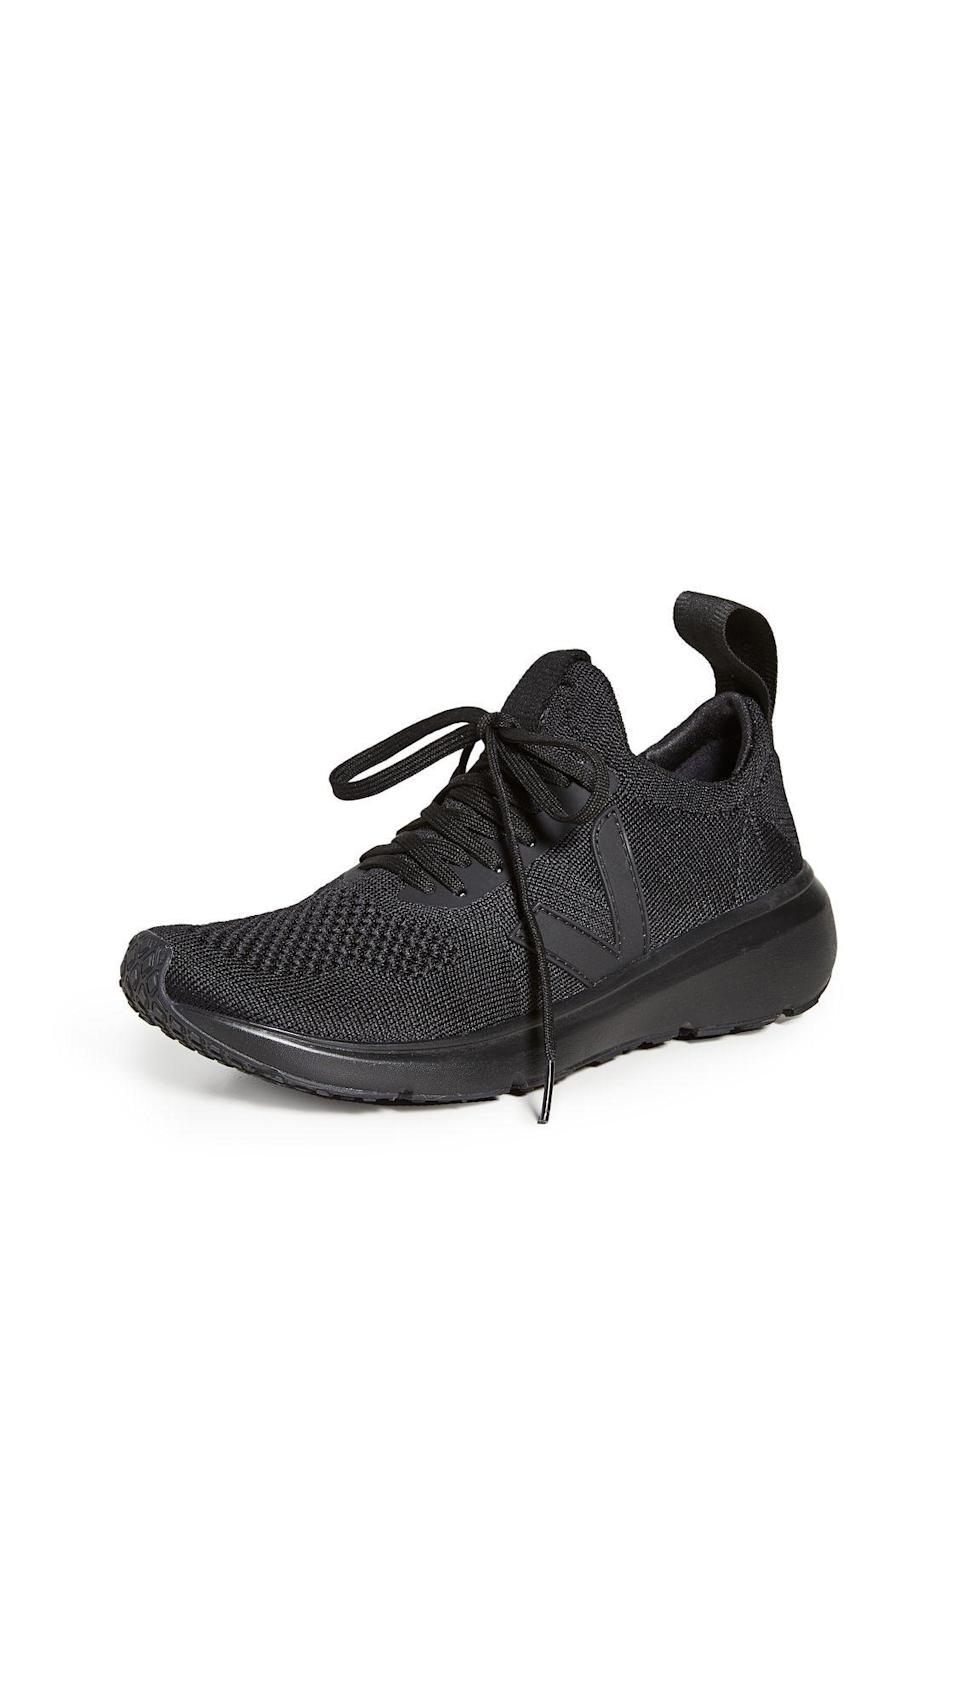 """<p><strong>Veja</strong></p><p>shopbop.com</p><p><a href=""""https://go.redirectingat.com?id=74968X1596630&url=https%3A%2F%2Fwww.shopbop.com%2Frick-owens-running-style-sneakers%2Fvp%2Fv%3D1%2F1501647224.htm&sref=https%3A%2F%2Fwww.cosmopolitan.com%2Fstyle-beauty%2Ffashion%2Fg36098924%2Fshopbop-spring-sale%2F"""" rel=""""nofollow noopener"""" target=""""_blank"""" data-ylk=""""slk:SHOP NOW"""" class=""""link rapid-noclick-resp"""">SHOP NOW</a></p><p><strong><del>$203</del> $173 (15% off)</strong></p><p>Originally $290, these running sneakers from Rick Owens' latest collaboration with fair trade, eco-friendly brand Veja are a splurge you can feel good about. The shoes are made from 45 percent bio-based materials with an L-FOAM cushion made from 50 percent Brazilian natural rubber, and a 3D knit made from recycled plastic bottles. </p>"""